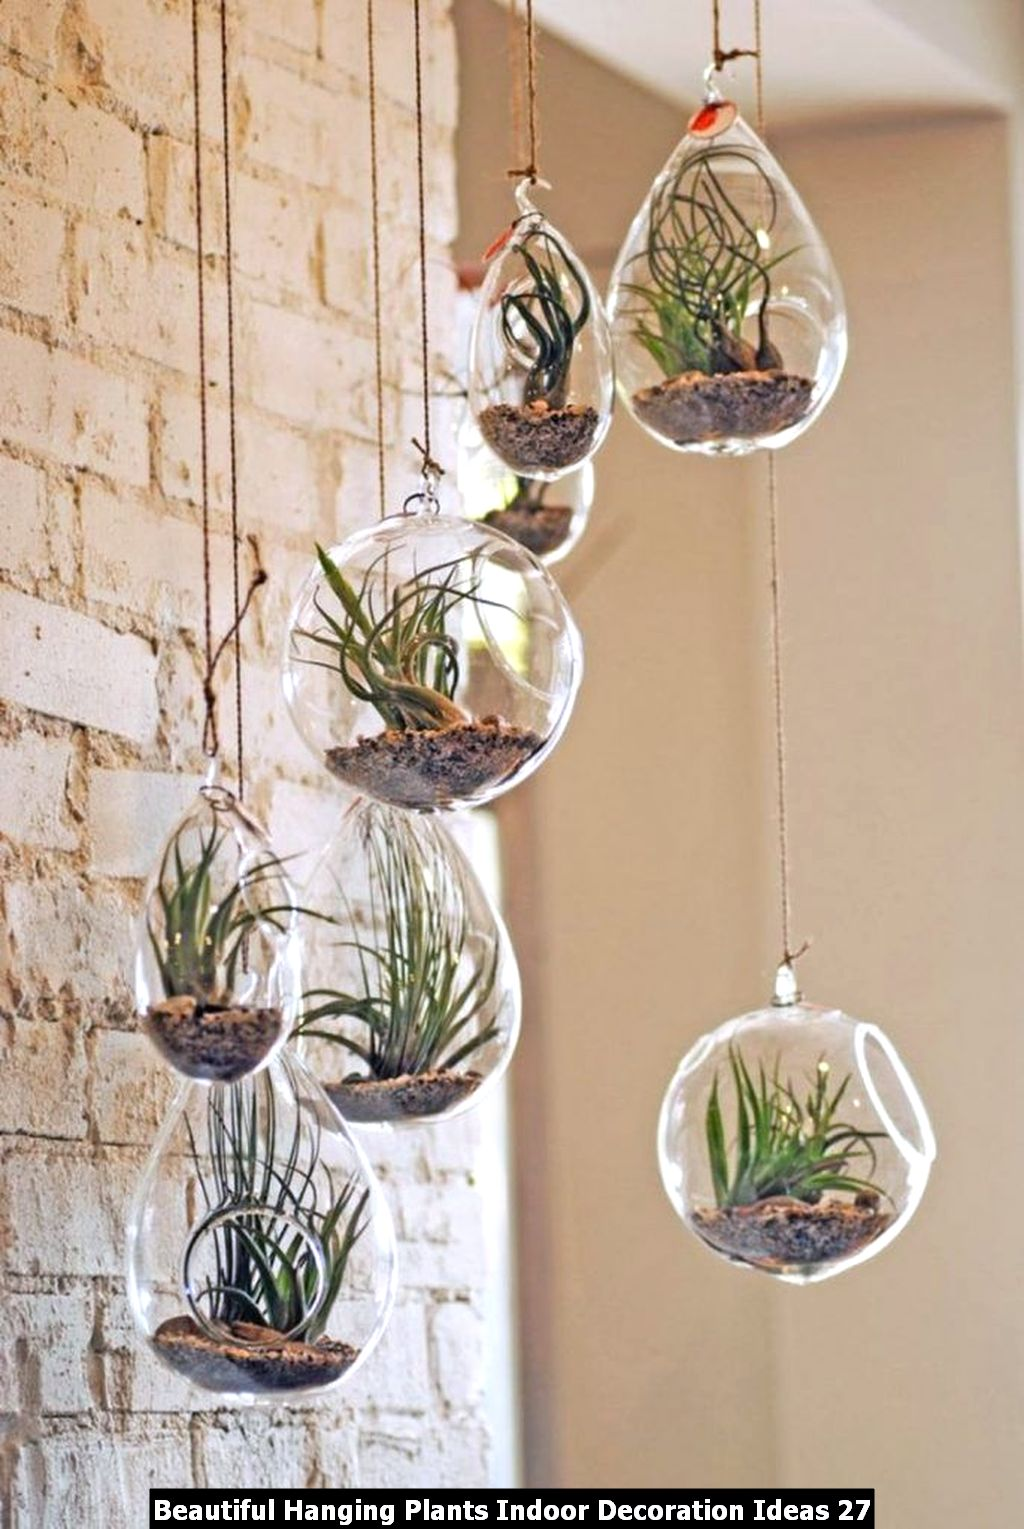 Beautiful Hanging Plants Indoor Decoration Ideas 27